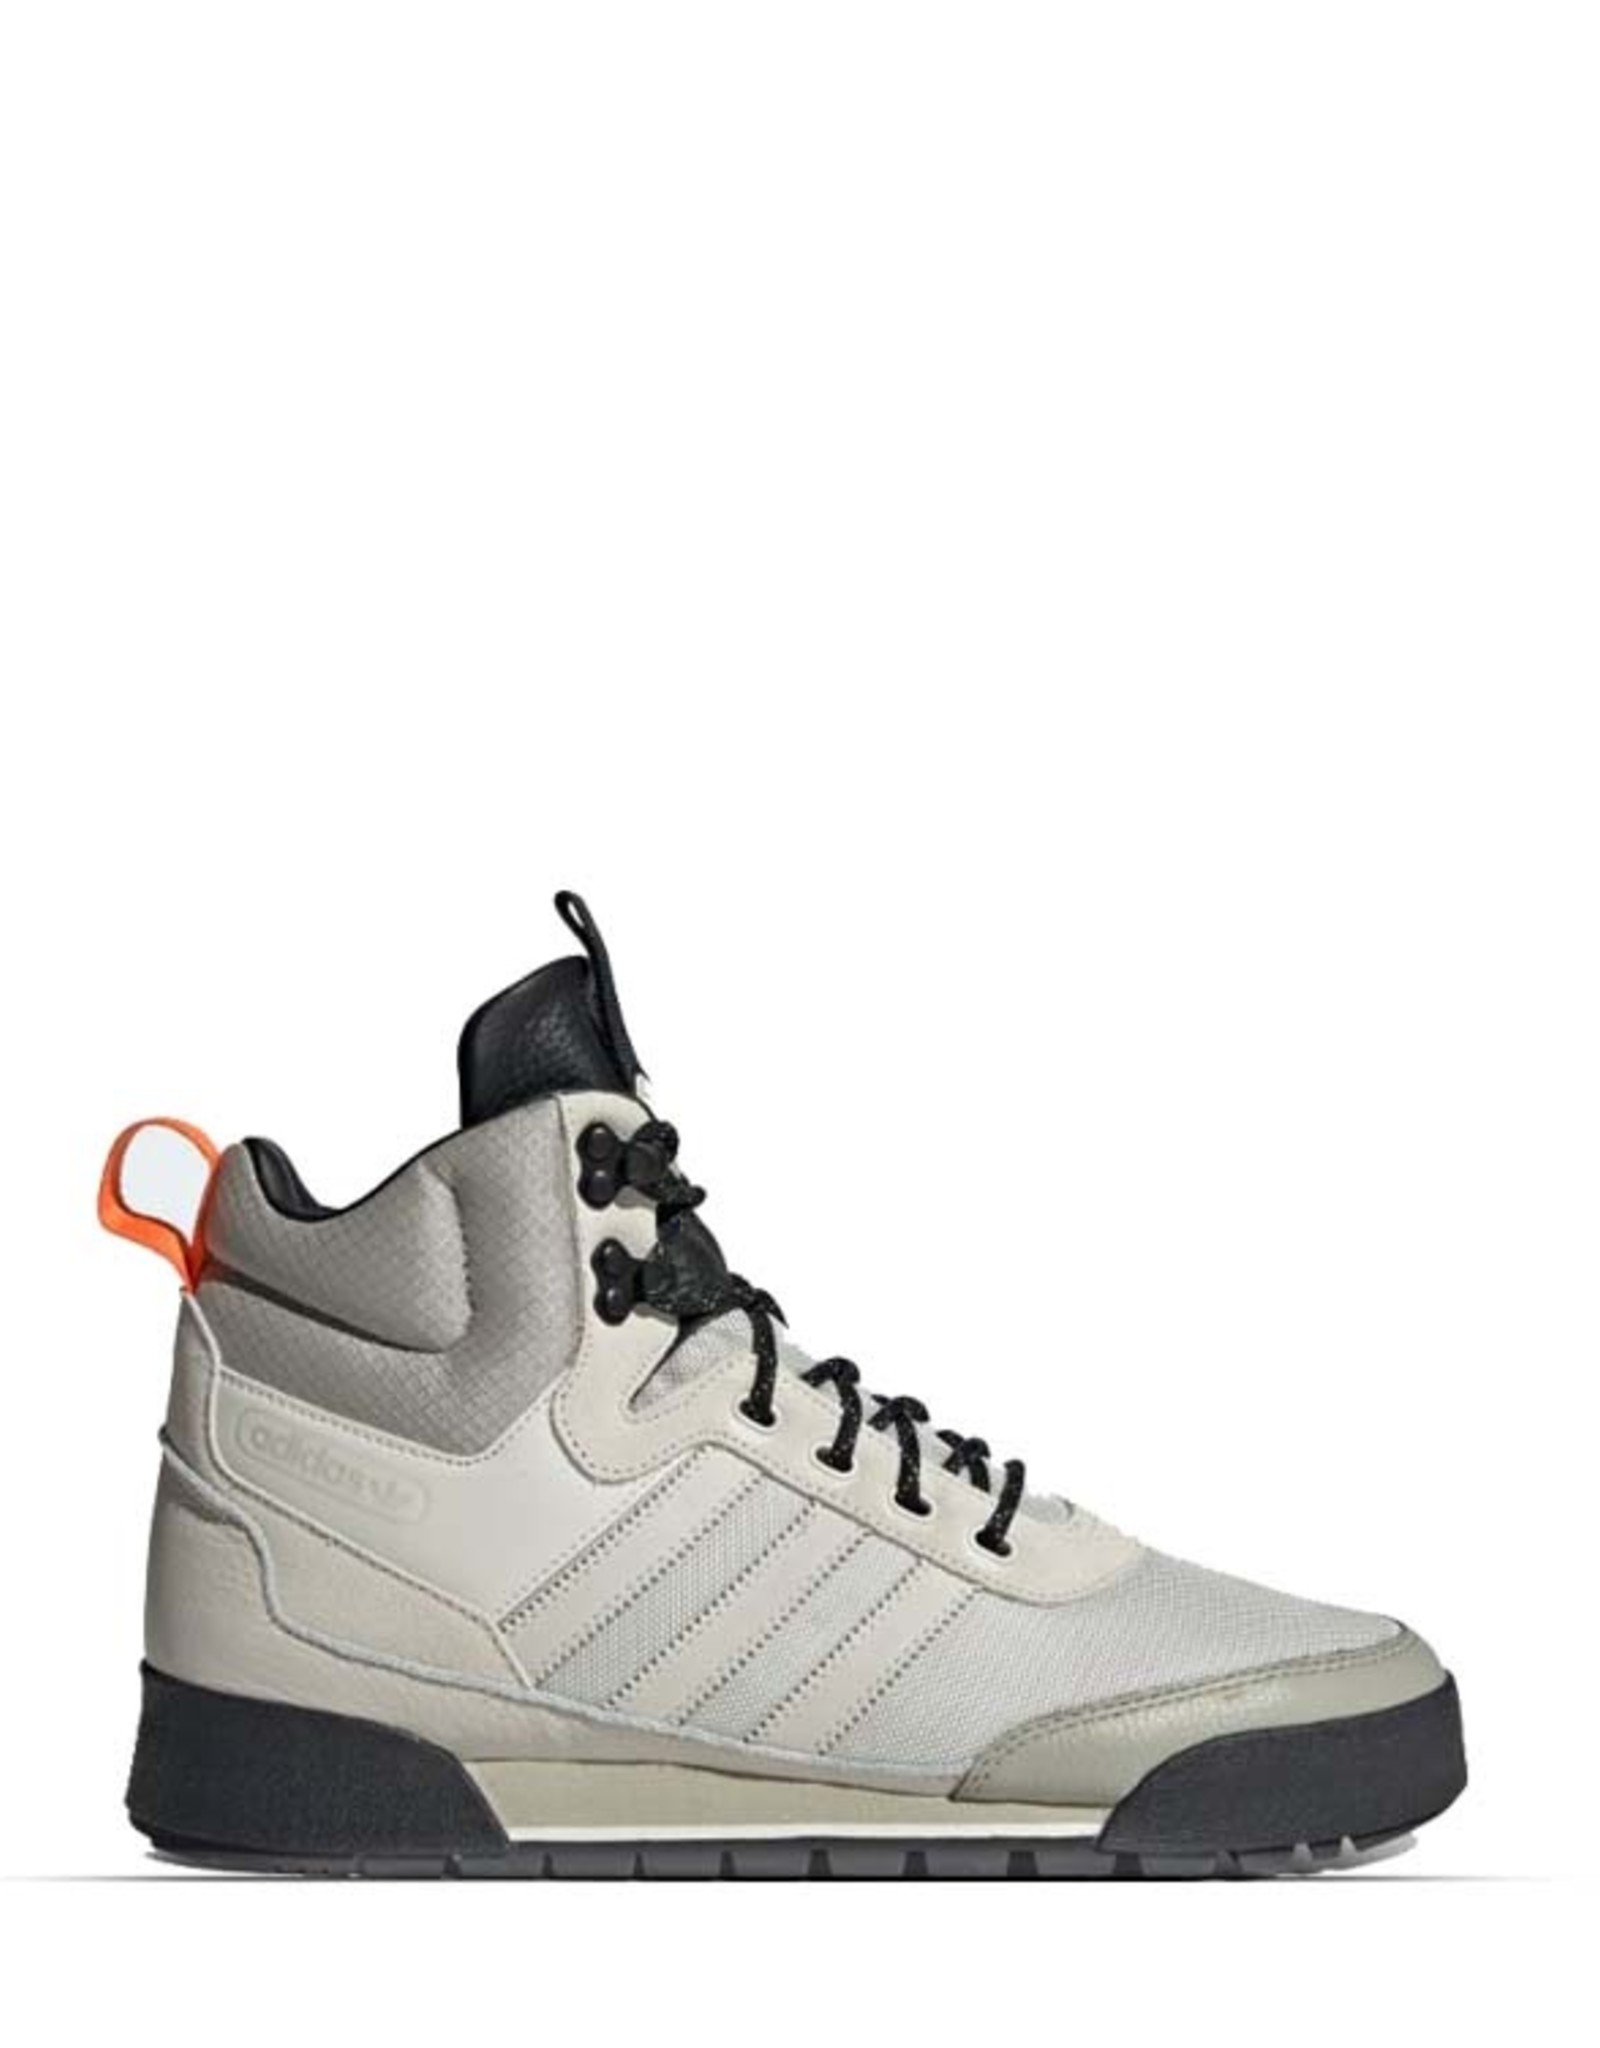 ADIDAS BAARA BOOT BEIGE BLACK ORANGE